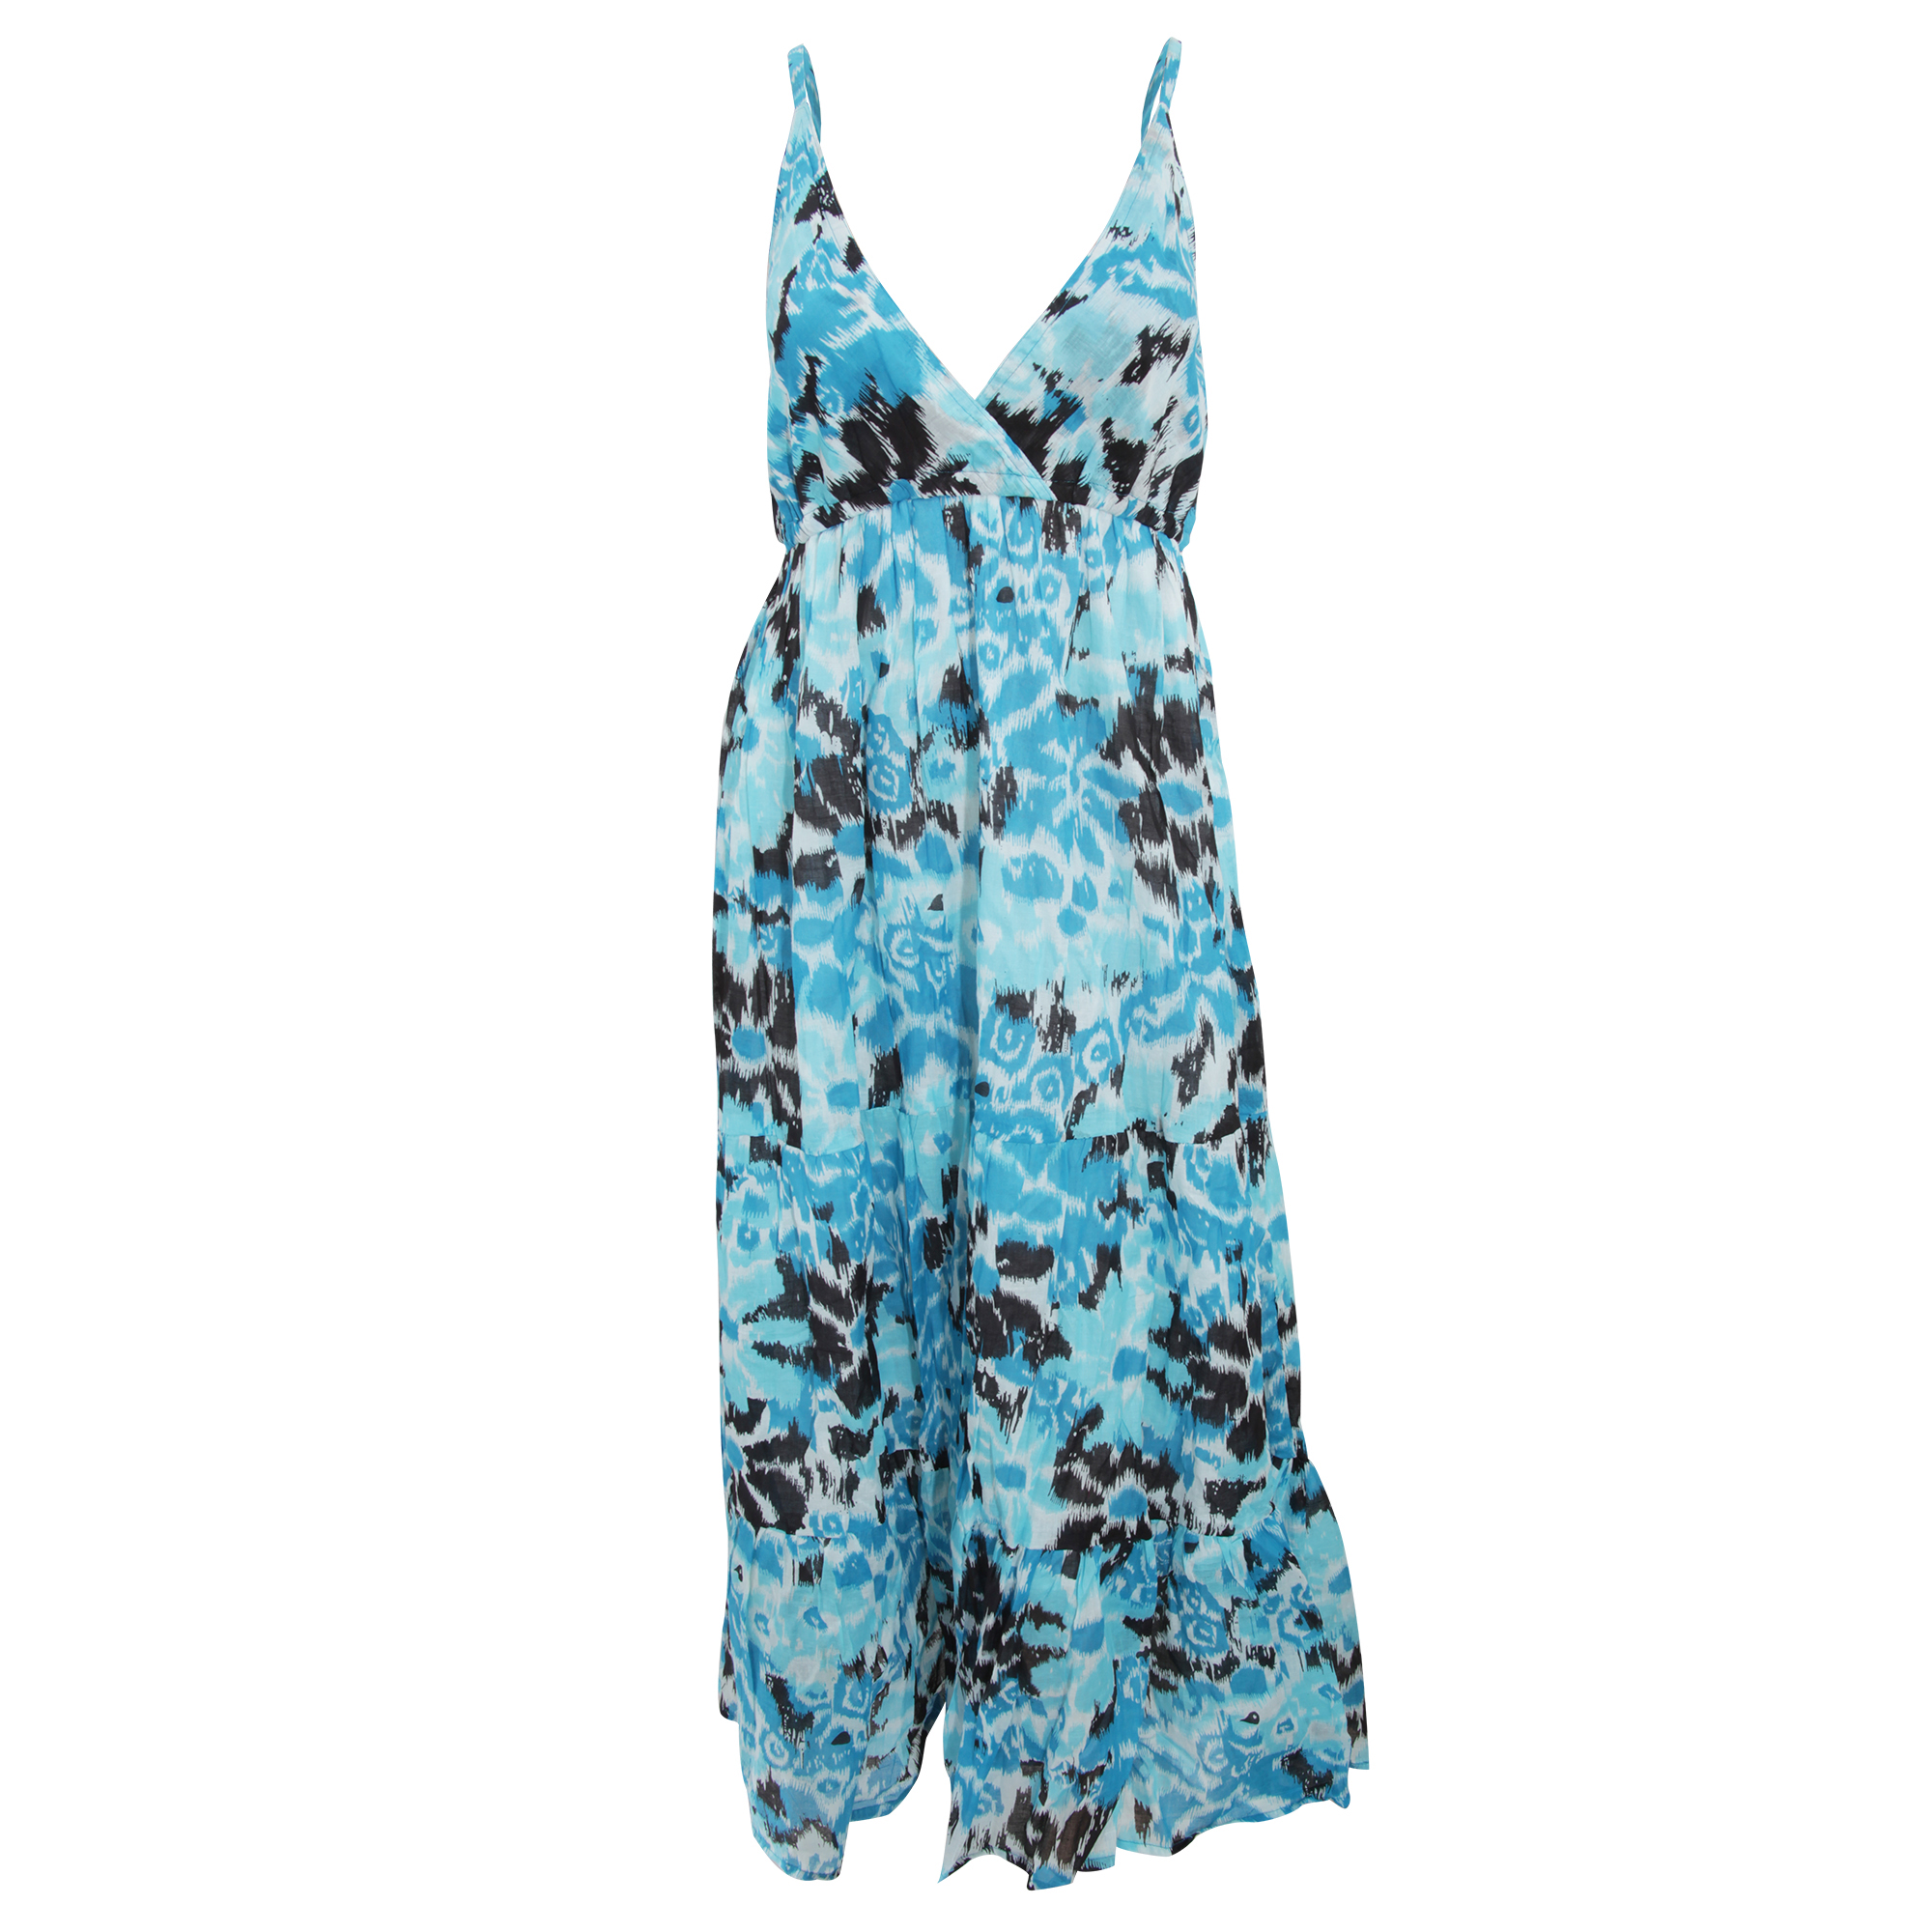 Bulk, Wholesale, Job Lot, Clearance Assorted Clothing (Dresses, Tops, Footwear And More) (Box 12) (Womens Blue Maxi Dresses (Set of 37))